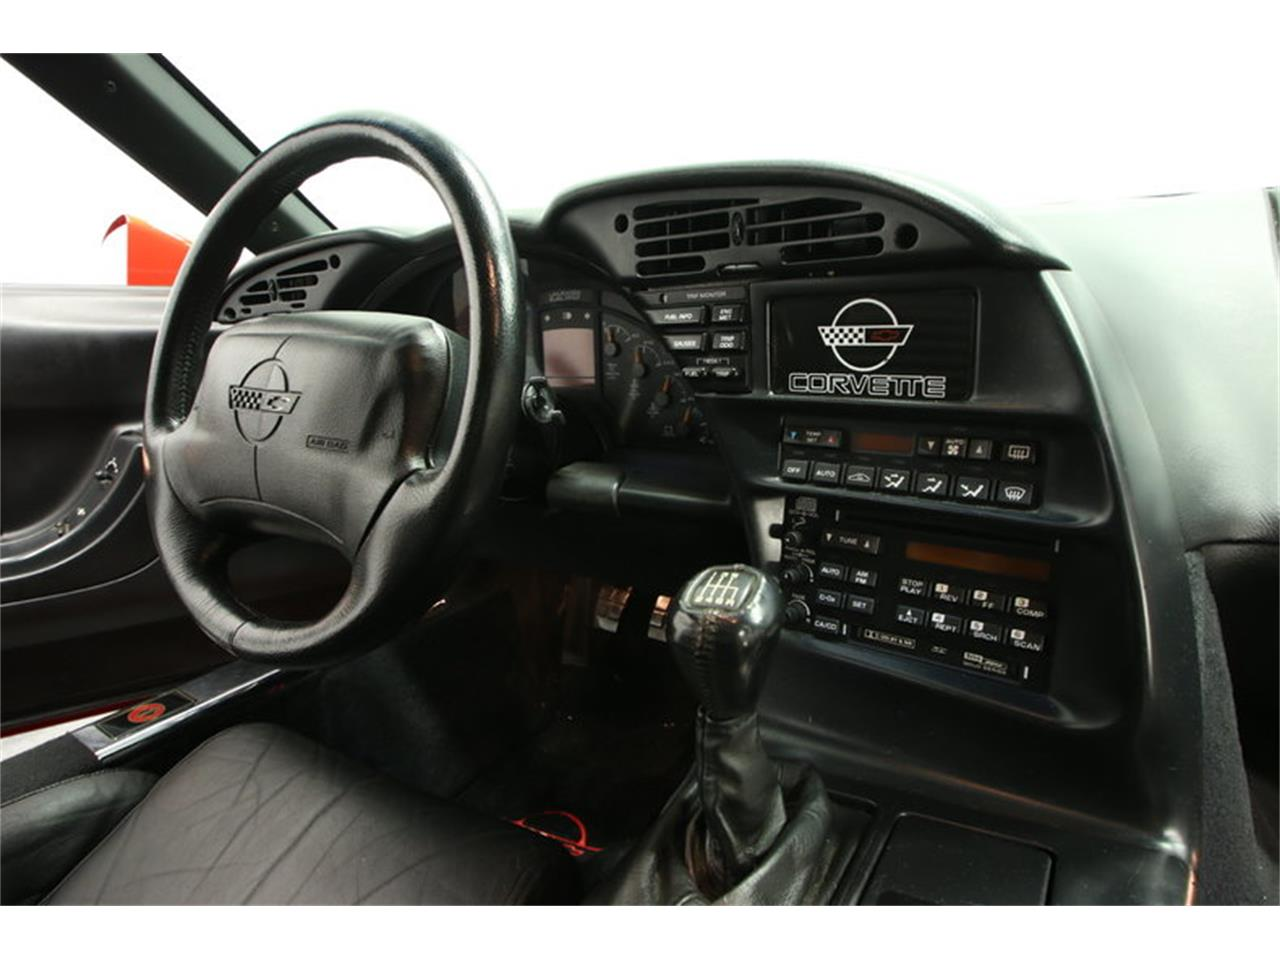 Large Picture of 1995 Corvette located in Florida Offered by Streetside Classics - Tampa - IURO